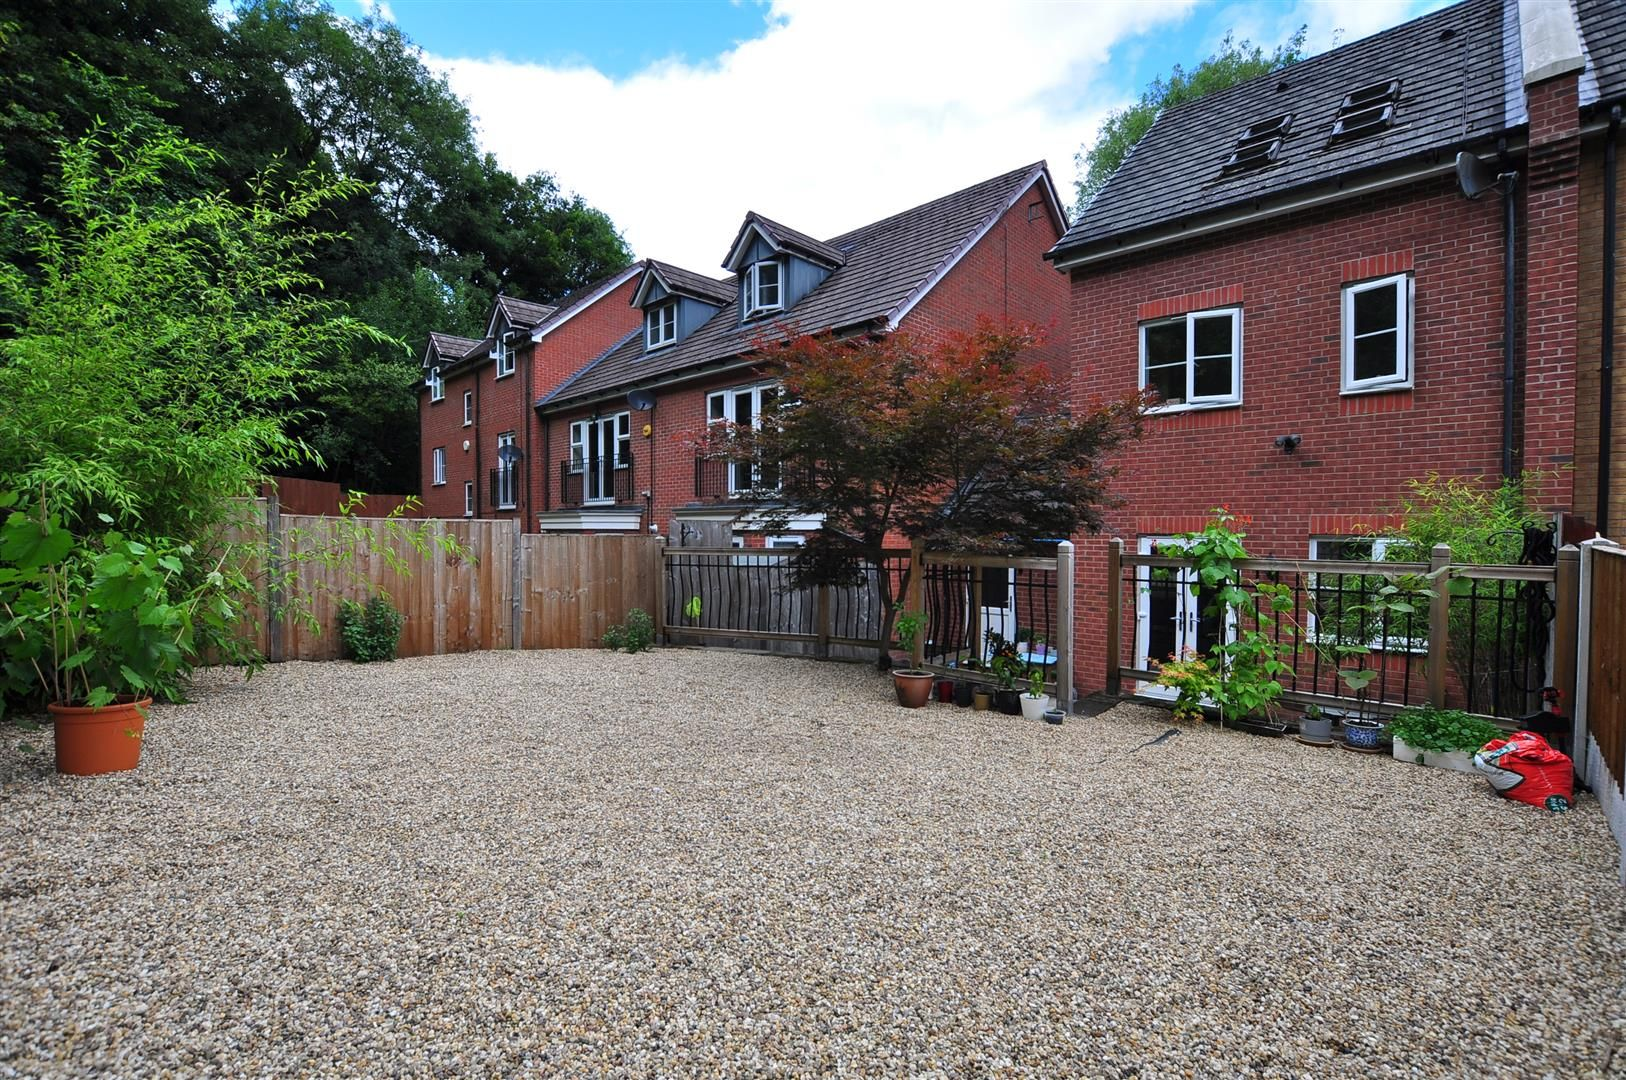 4 bed end-of-terrace for sale  - Property Image 18